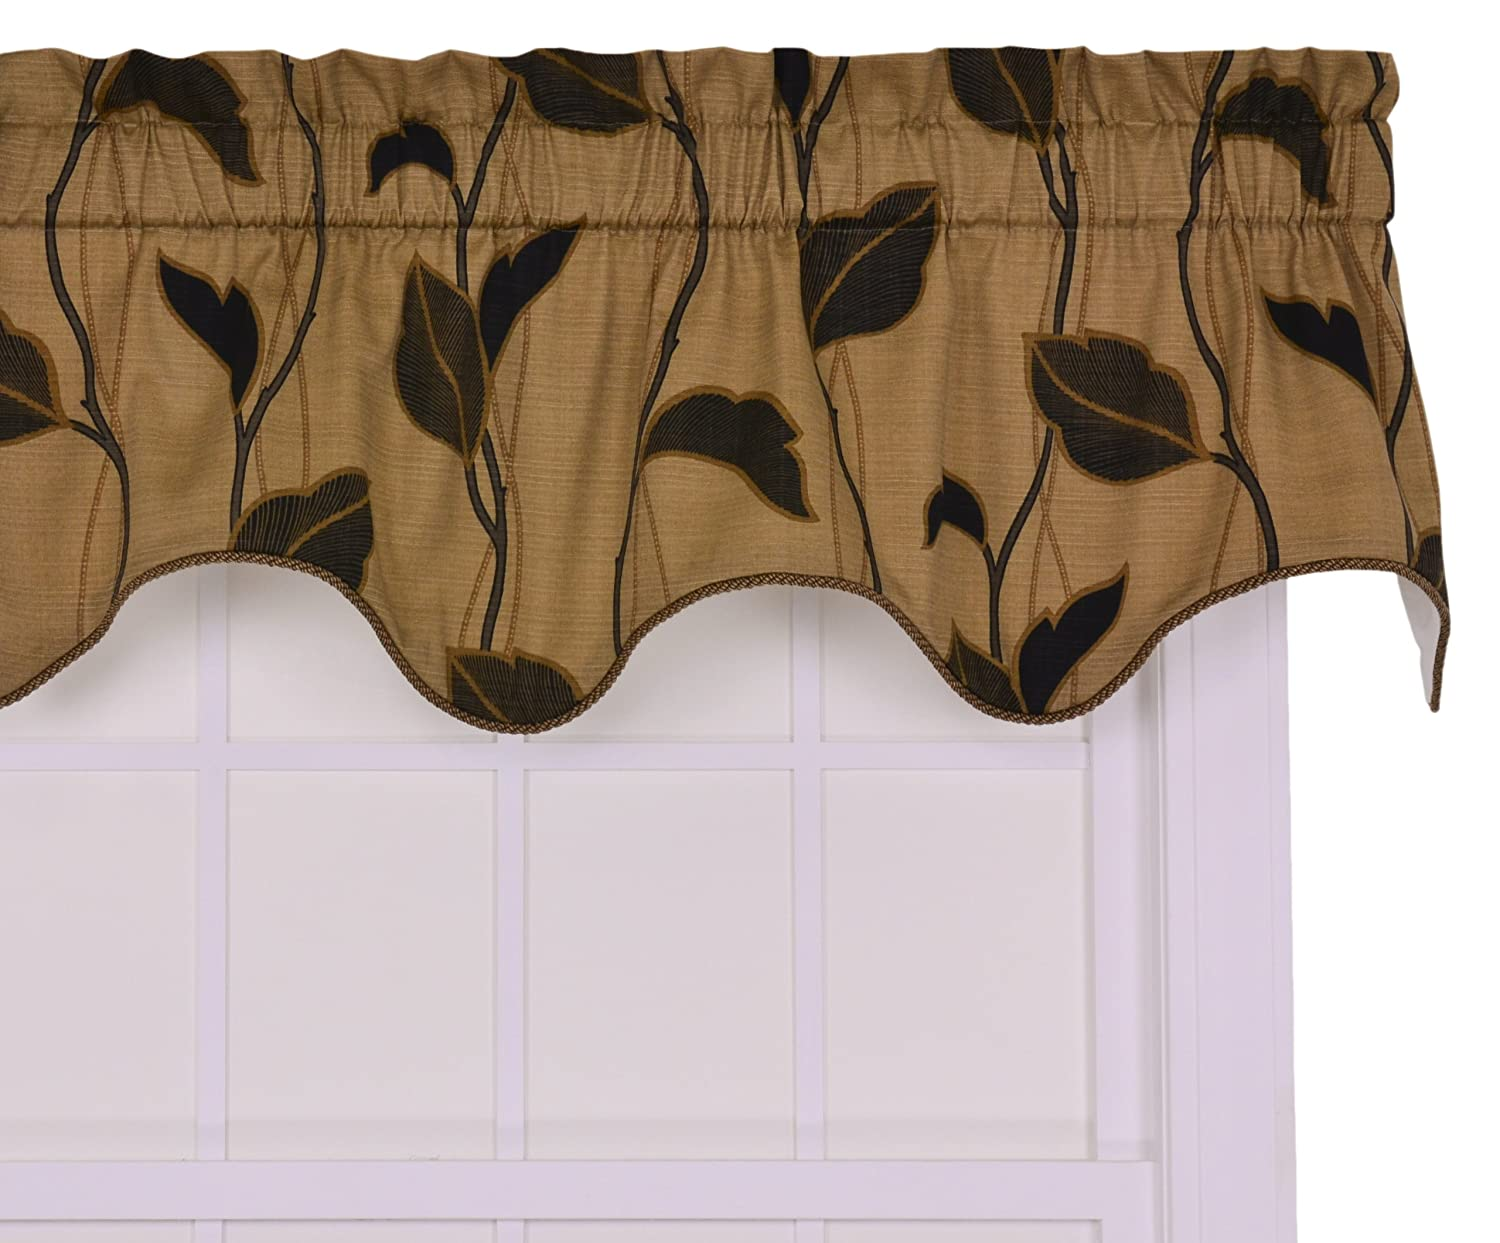 Ellis Curtain Riviera Large Scale Leaf and Vine Lined Duchess Filler Valance Window Curtain, Coffee